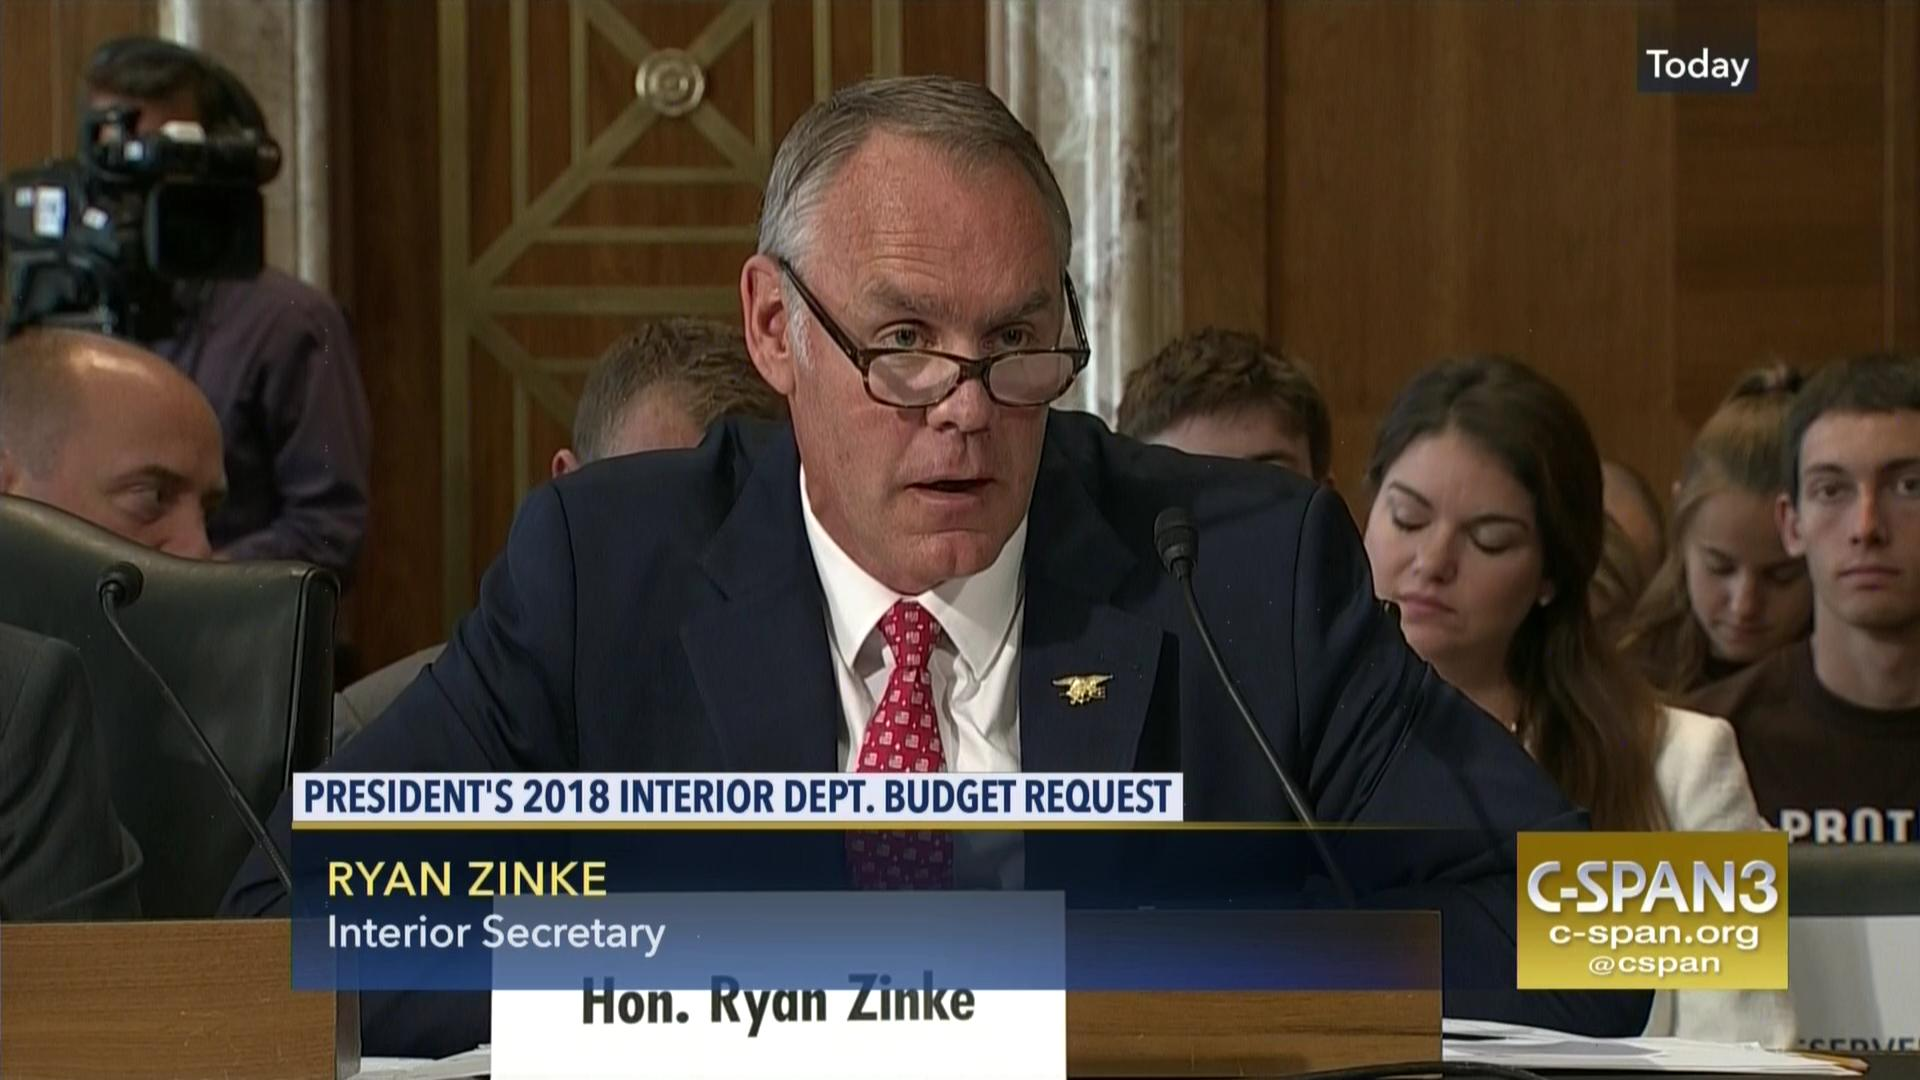 Interior Secretary Ryan Zinke Testifies FY 2018 Budget, Jun 20 2017 |  C SPAN.org